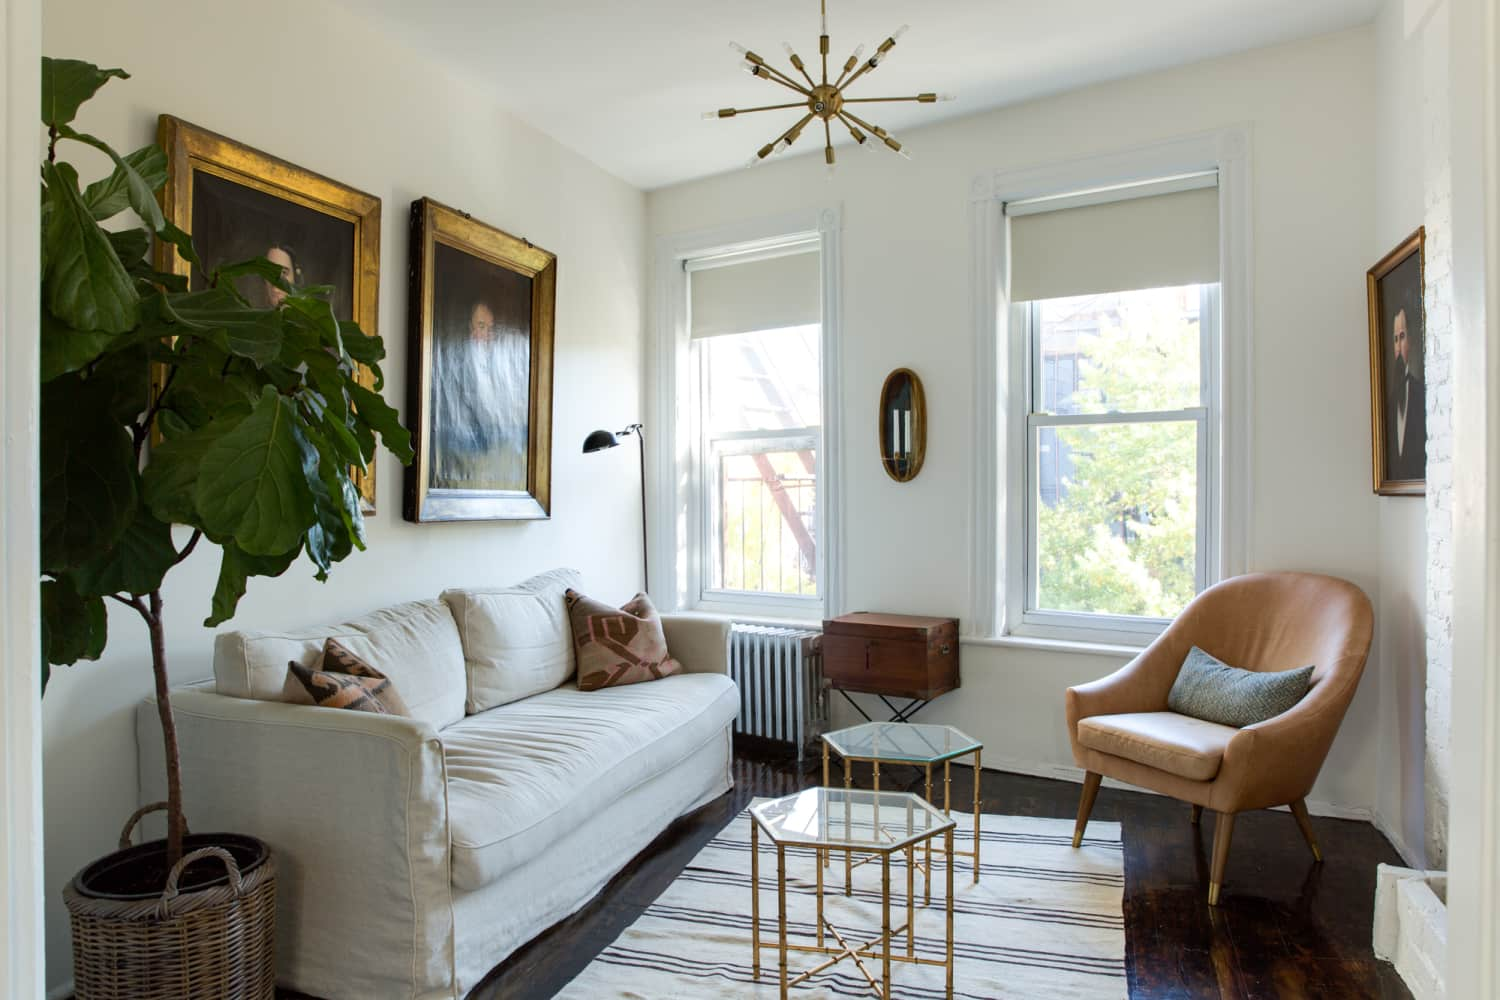 A Compact & Chic Classic Railroad Apartment in NYC